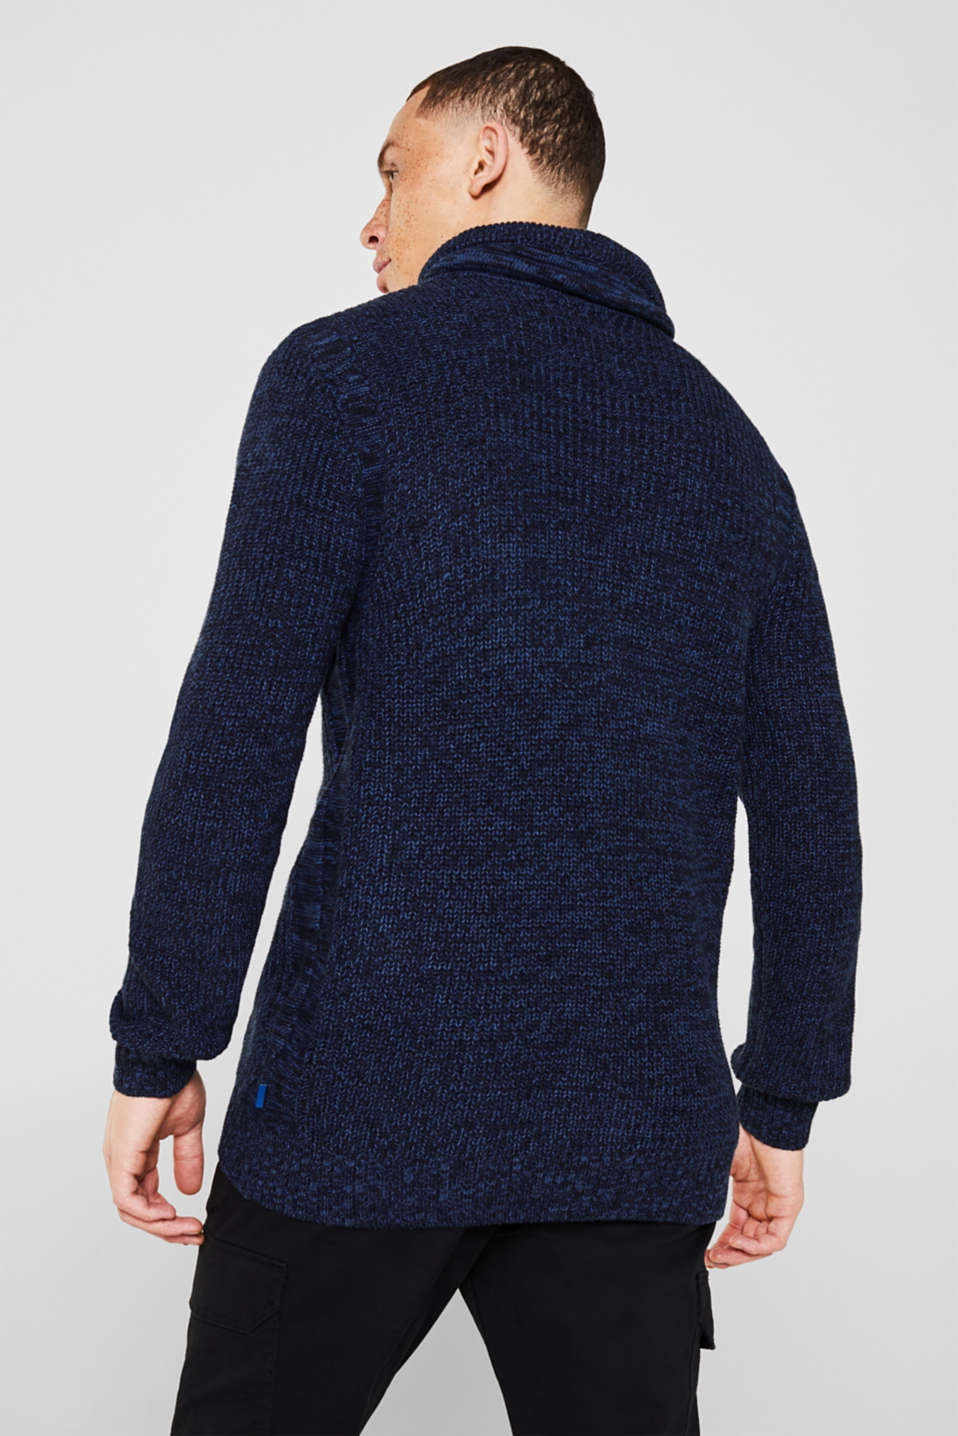 Knitted jumper with a drawstring collar, NAVY, detail image number 3